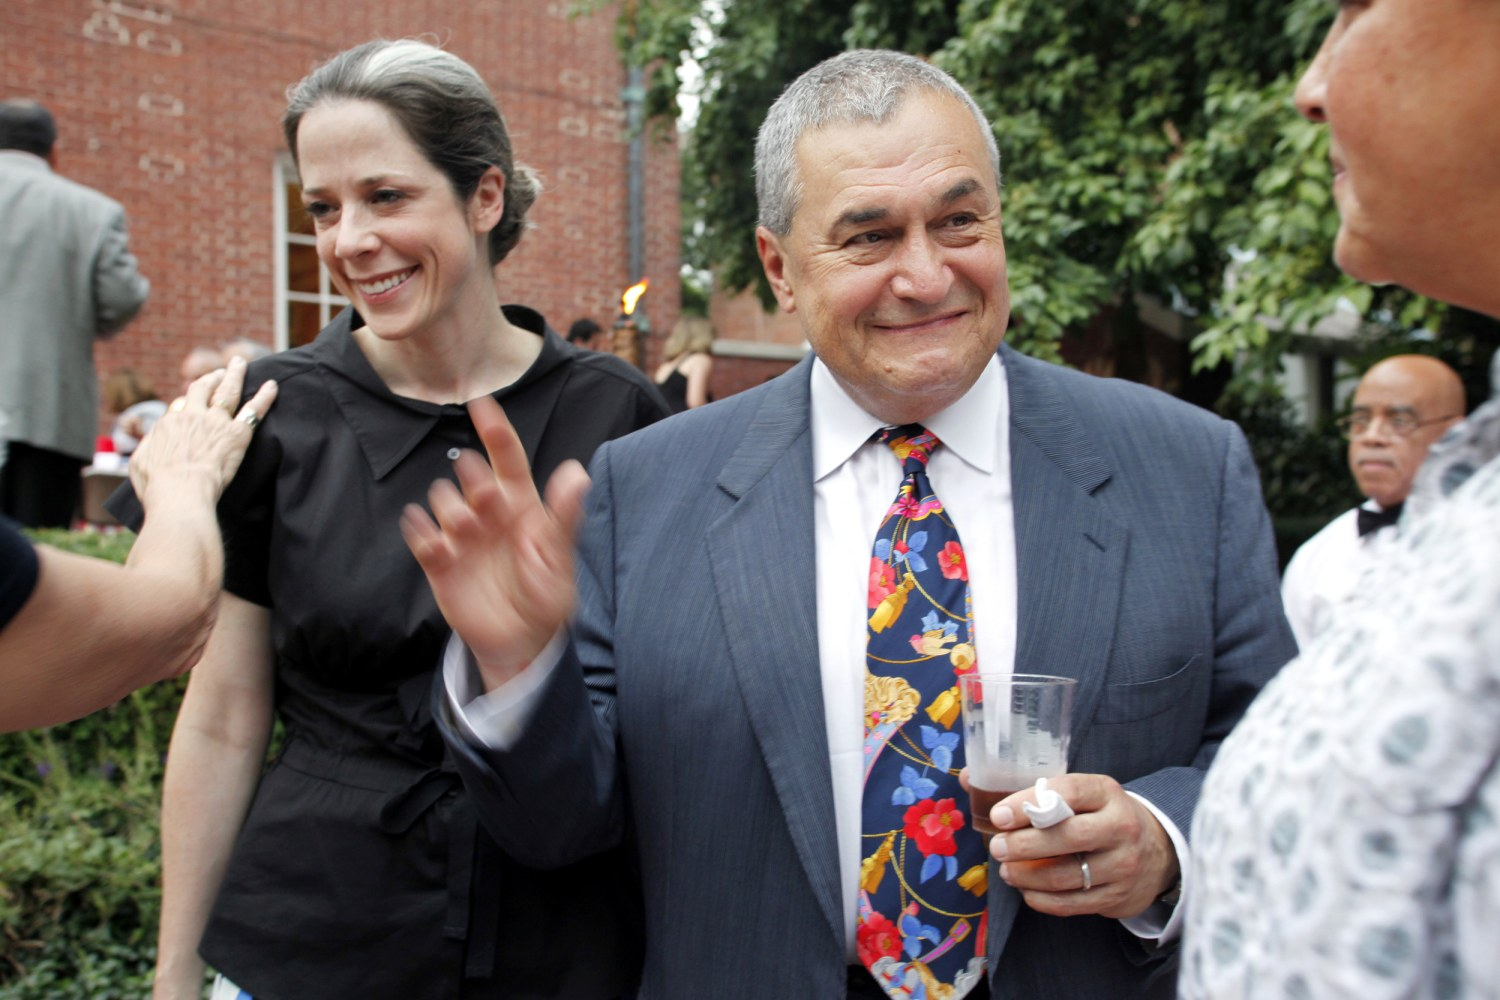 Tony Podesta steps down from lobbying group amid Mueller investigation